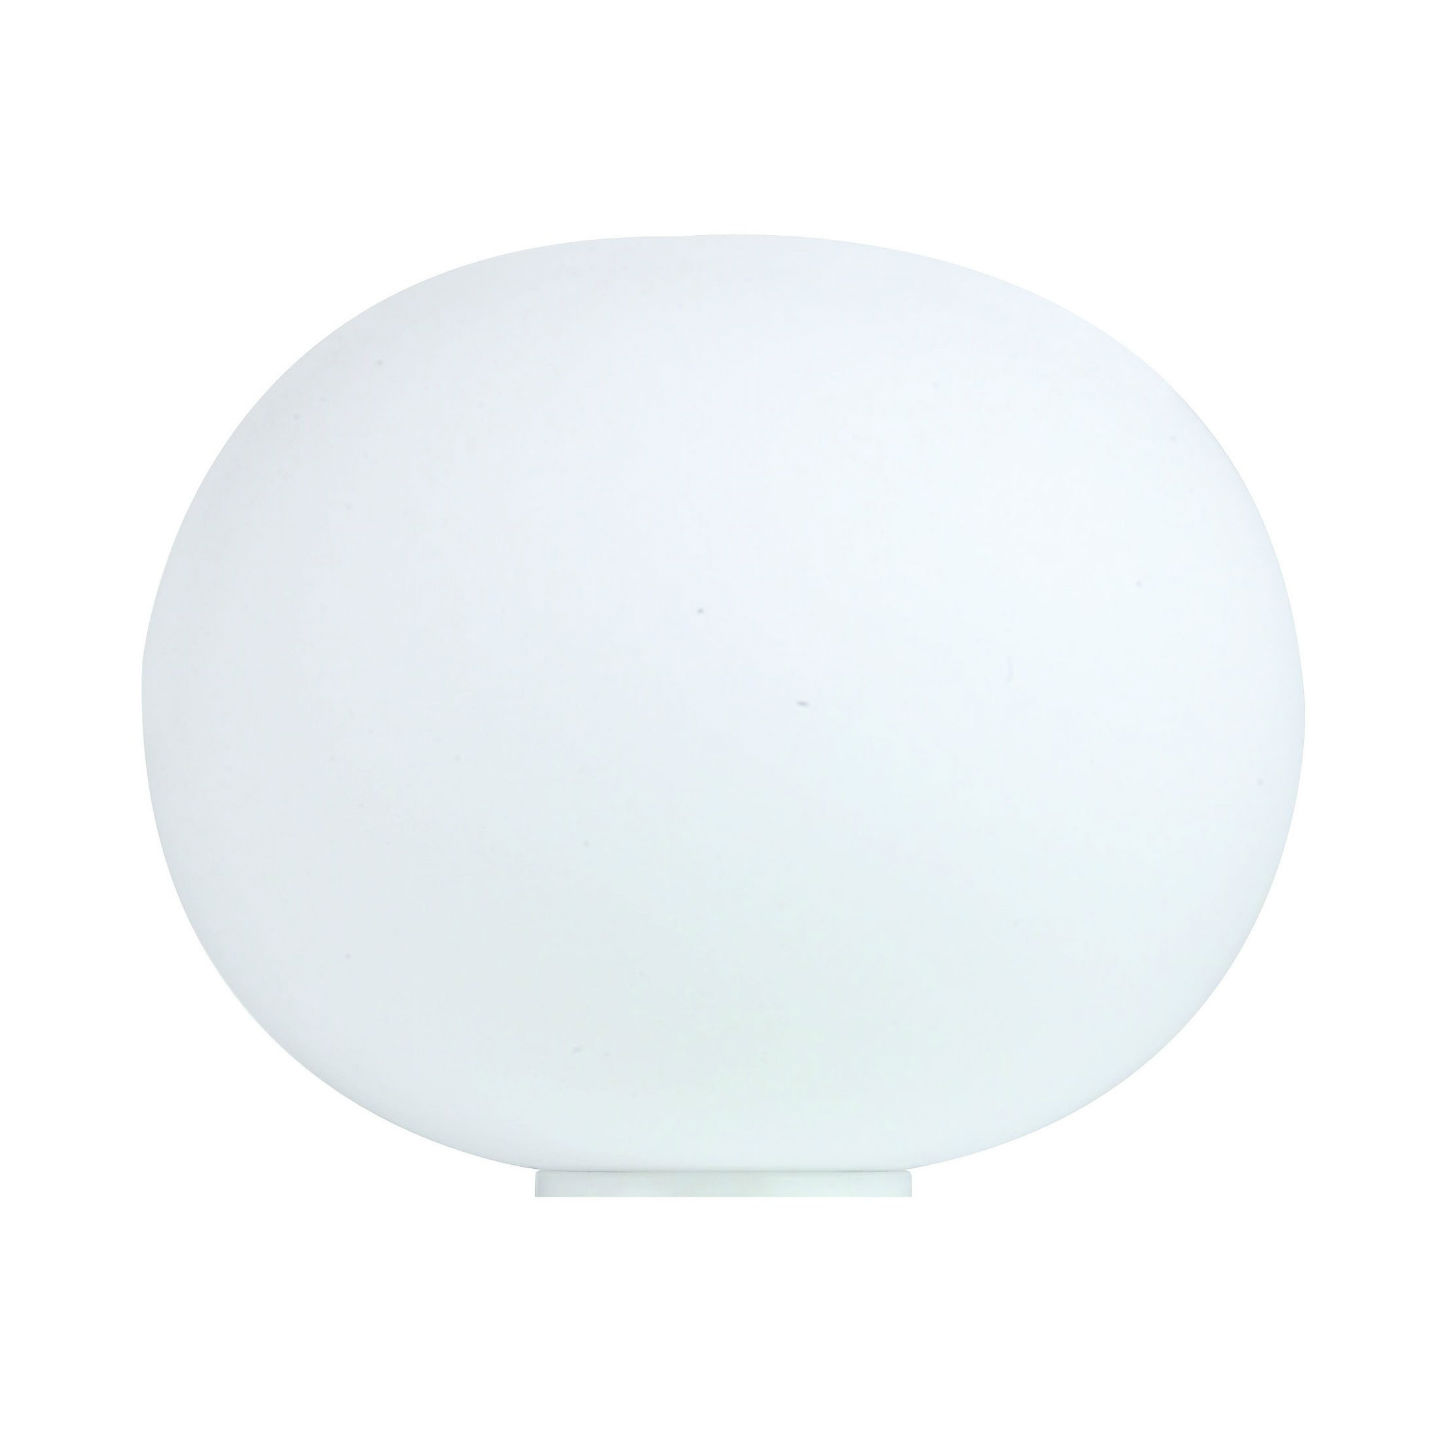 Glo Ball Mini T Table Lamp 11,2cm G9 20W - white opal